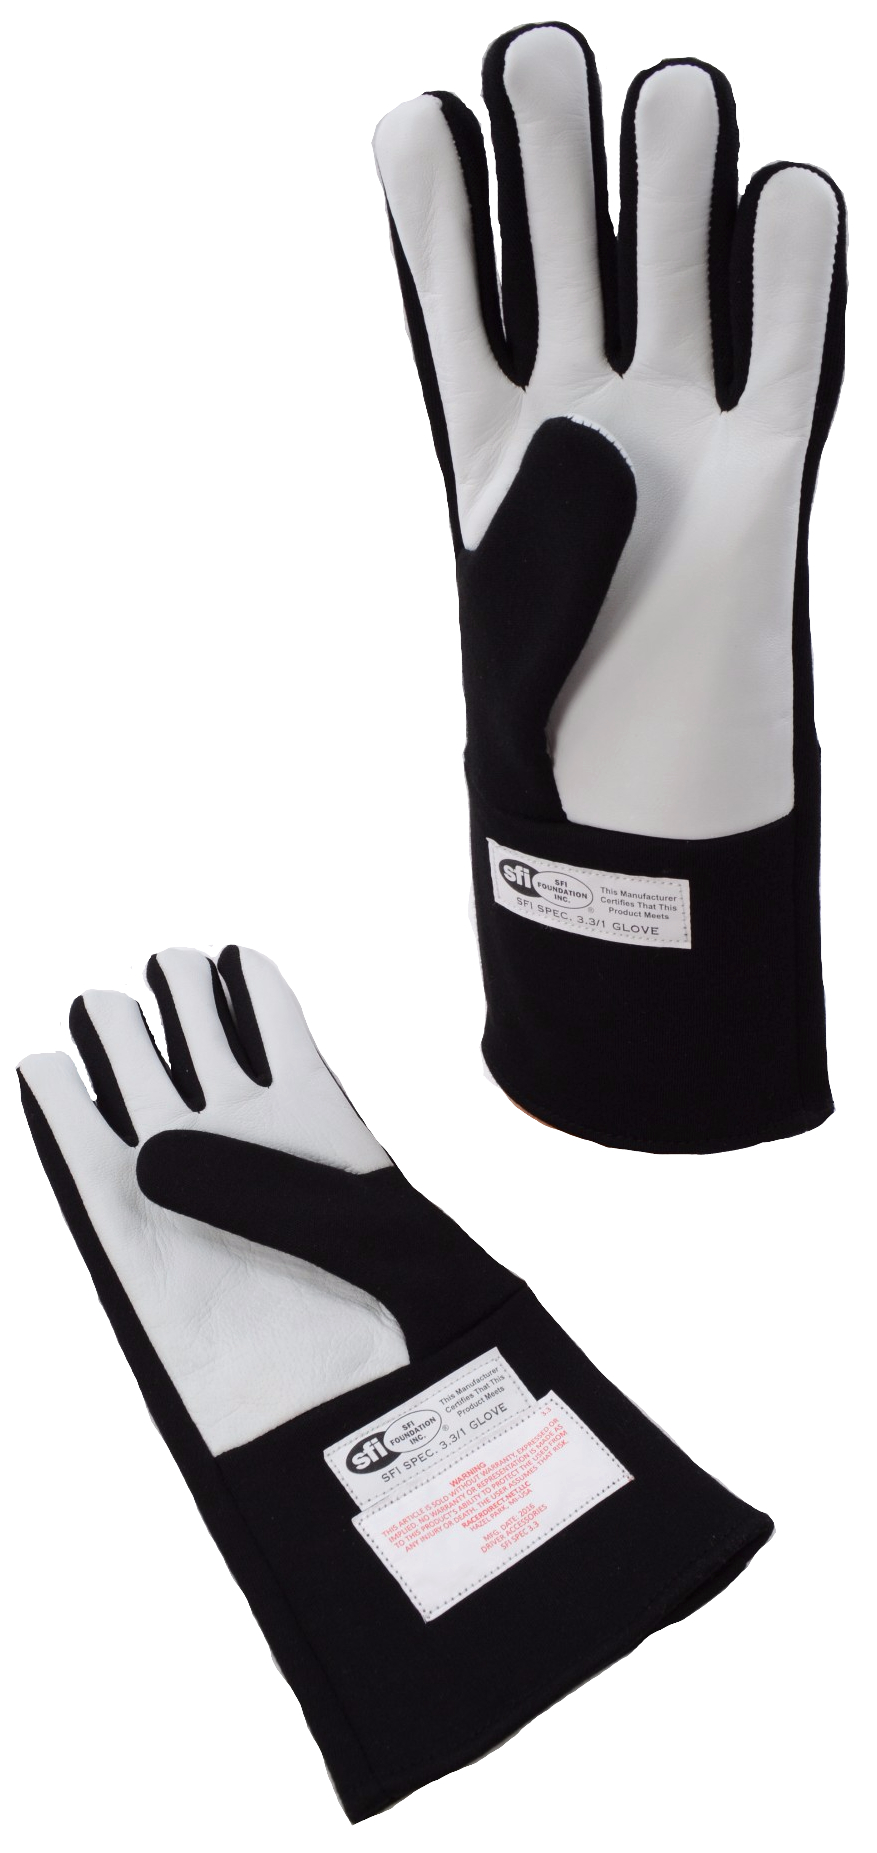 G-FORCE RACING DRIVERS GLOVE G1 1-LAYER NOMEX KNIT /& LEATHER SFI 3.3//1 BLACK LRG